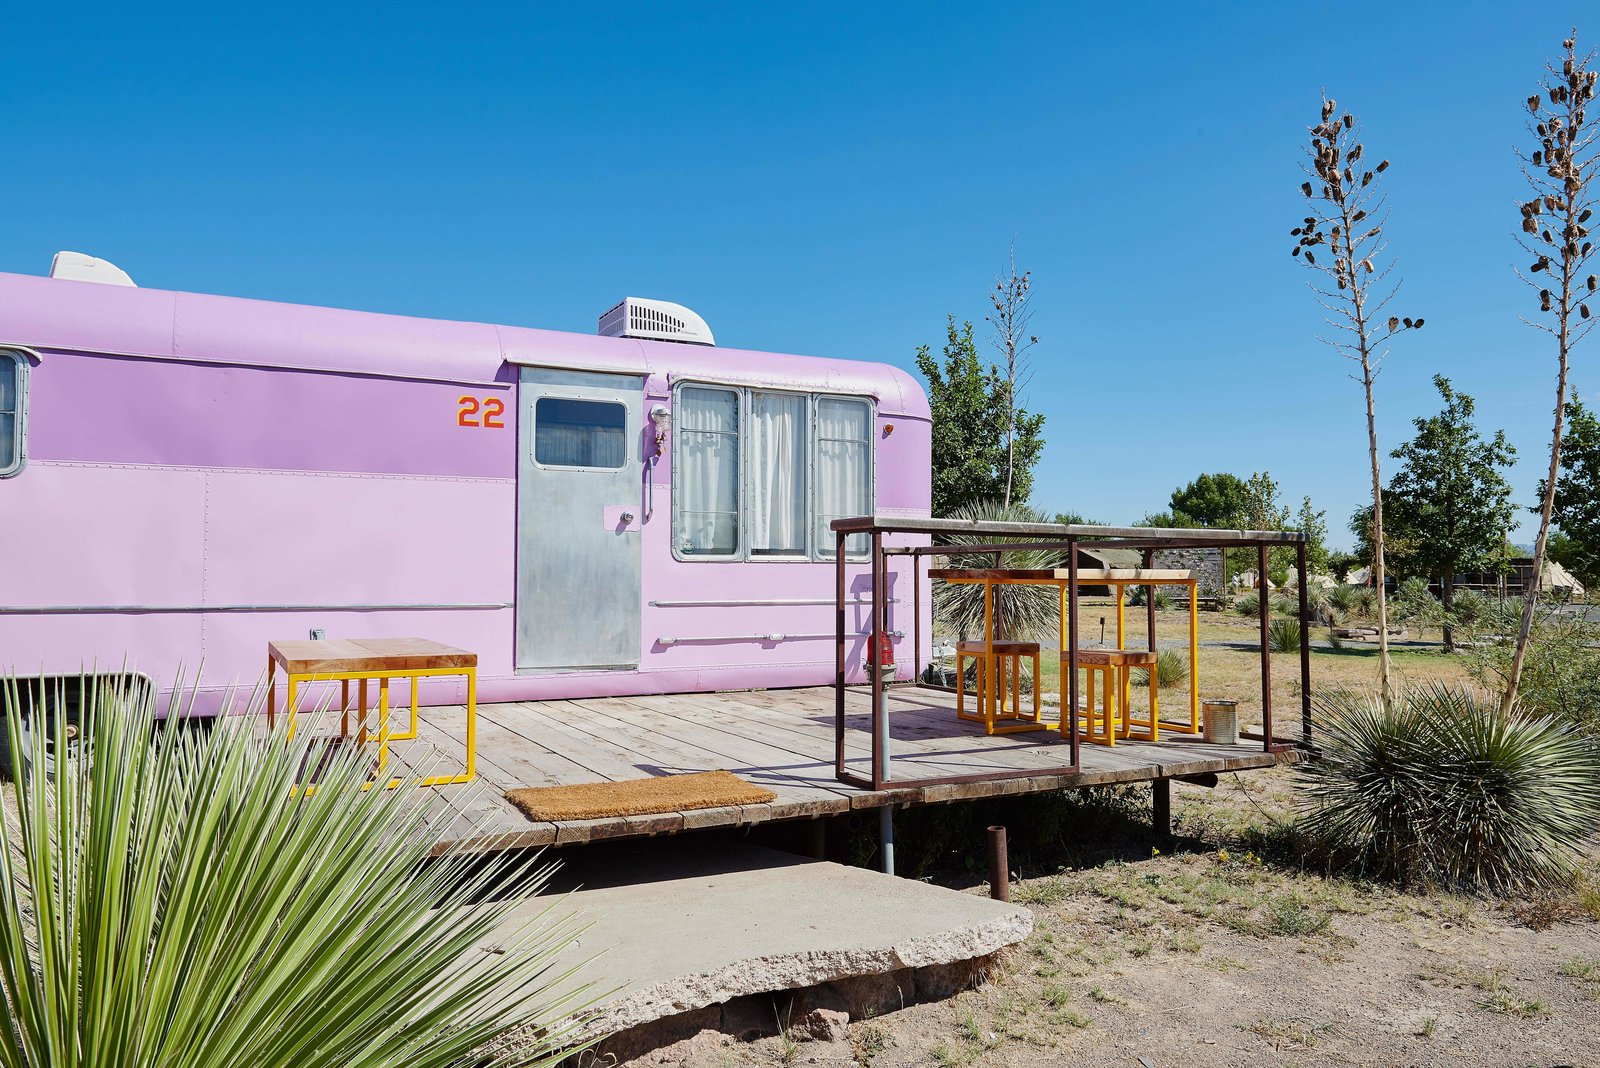 Outdoor, Front Yard, Desert, Small Patio, Porch, Deck, Wood Patio, Porch, Deck, Decking Patio, Porch, Deck, Boulders, and Shrubs The Vagabond Trailer at El Cosmico features a pink exterior and restored, marine-varnished birch interiors.  Photos from Journey by Design: Marfa, Texas